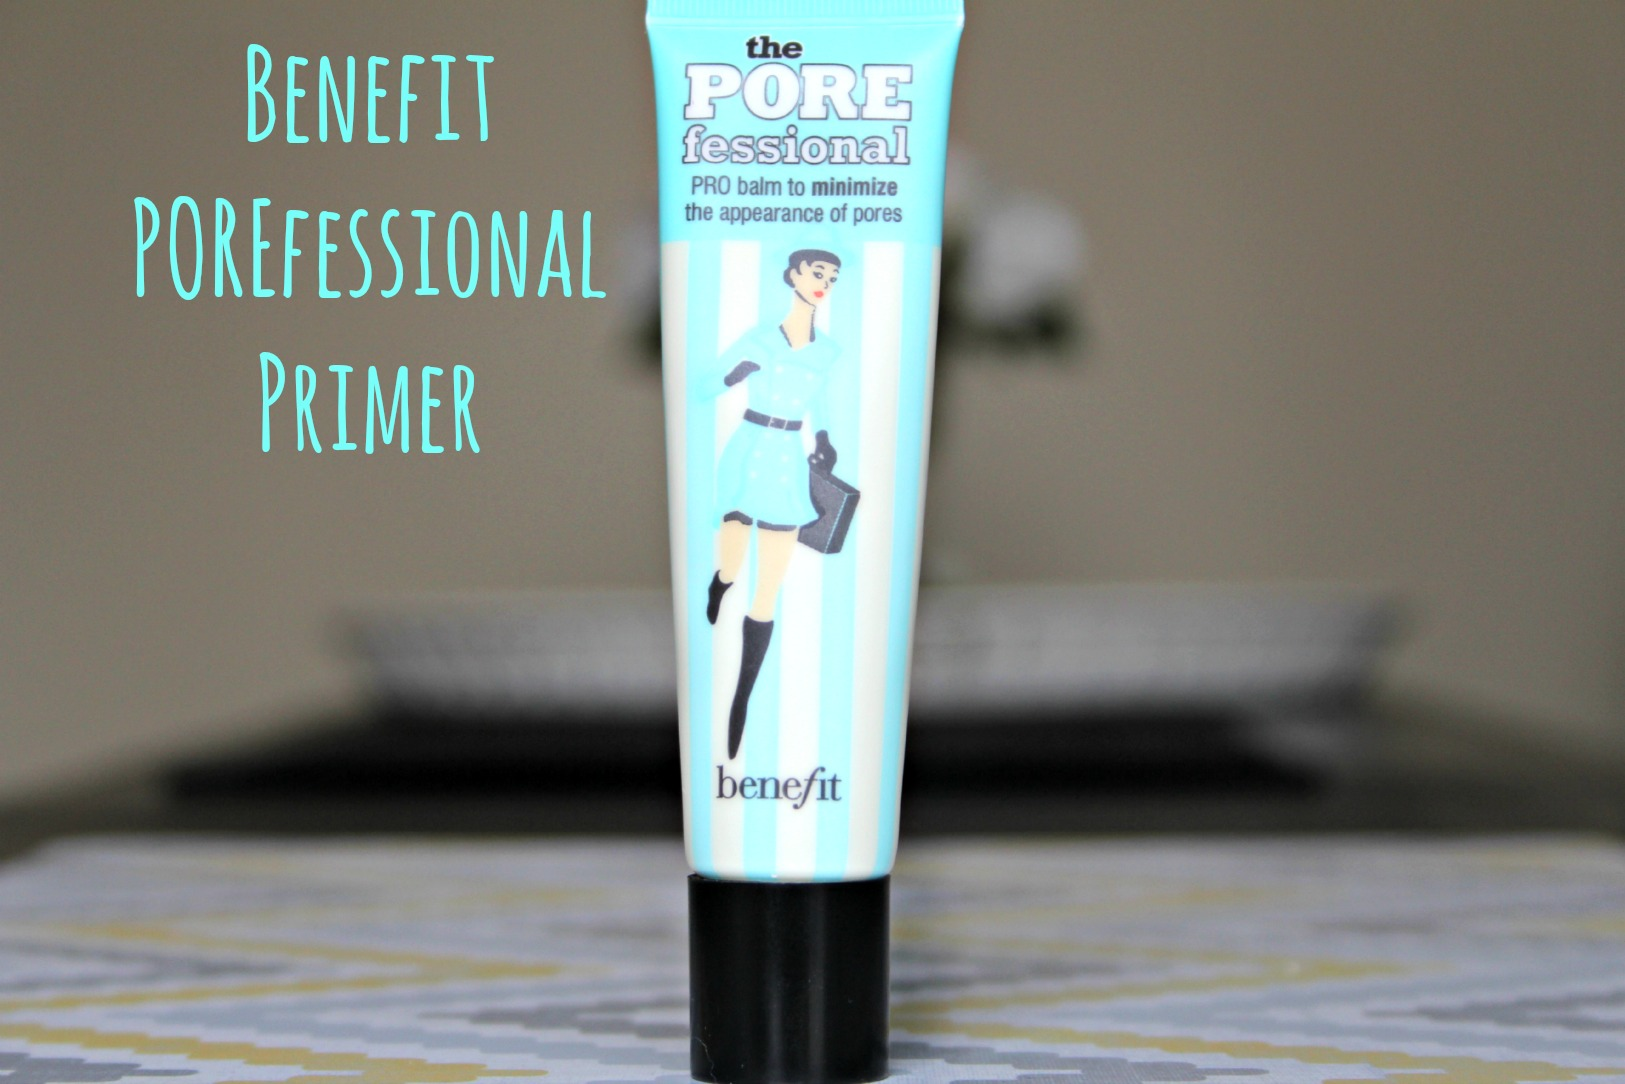 Benefit porefessional primer review - THIRTEEN THOUGHTS